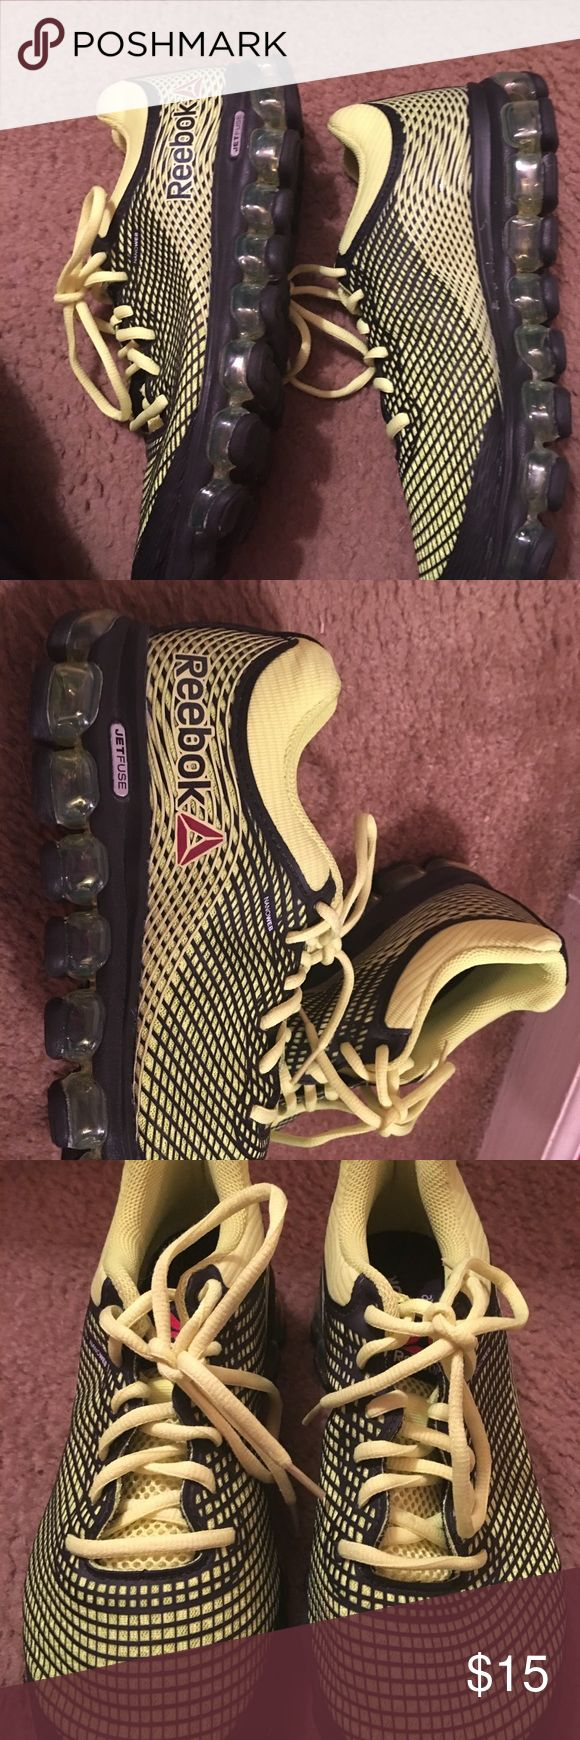 Reebox Athletics Shoes Very comfortable but my son wouldn't wear them Reebok Shoes Sneakers